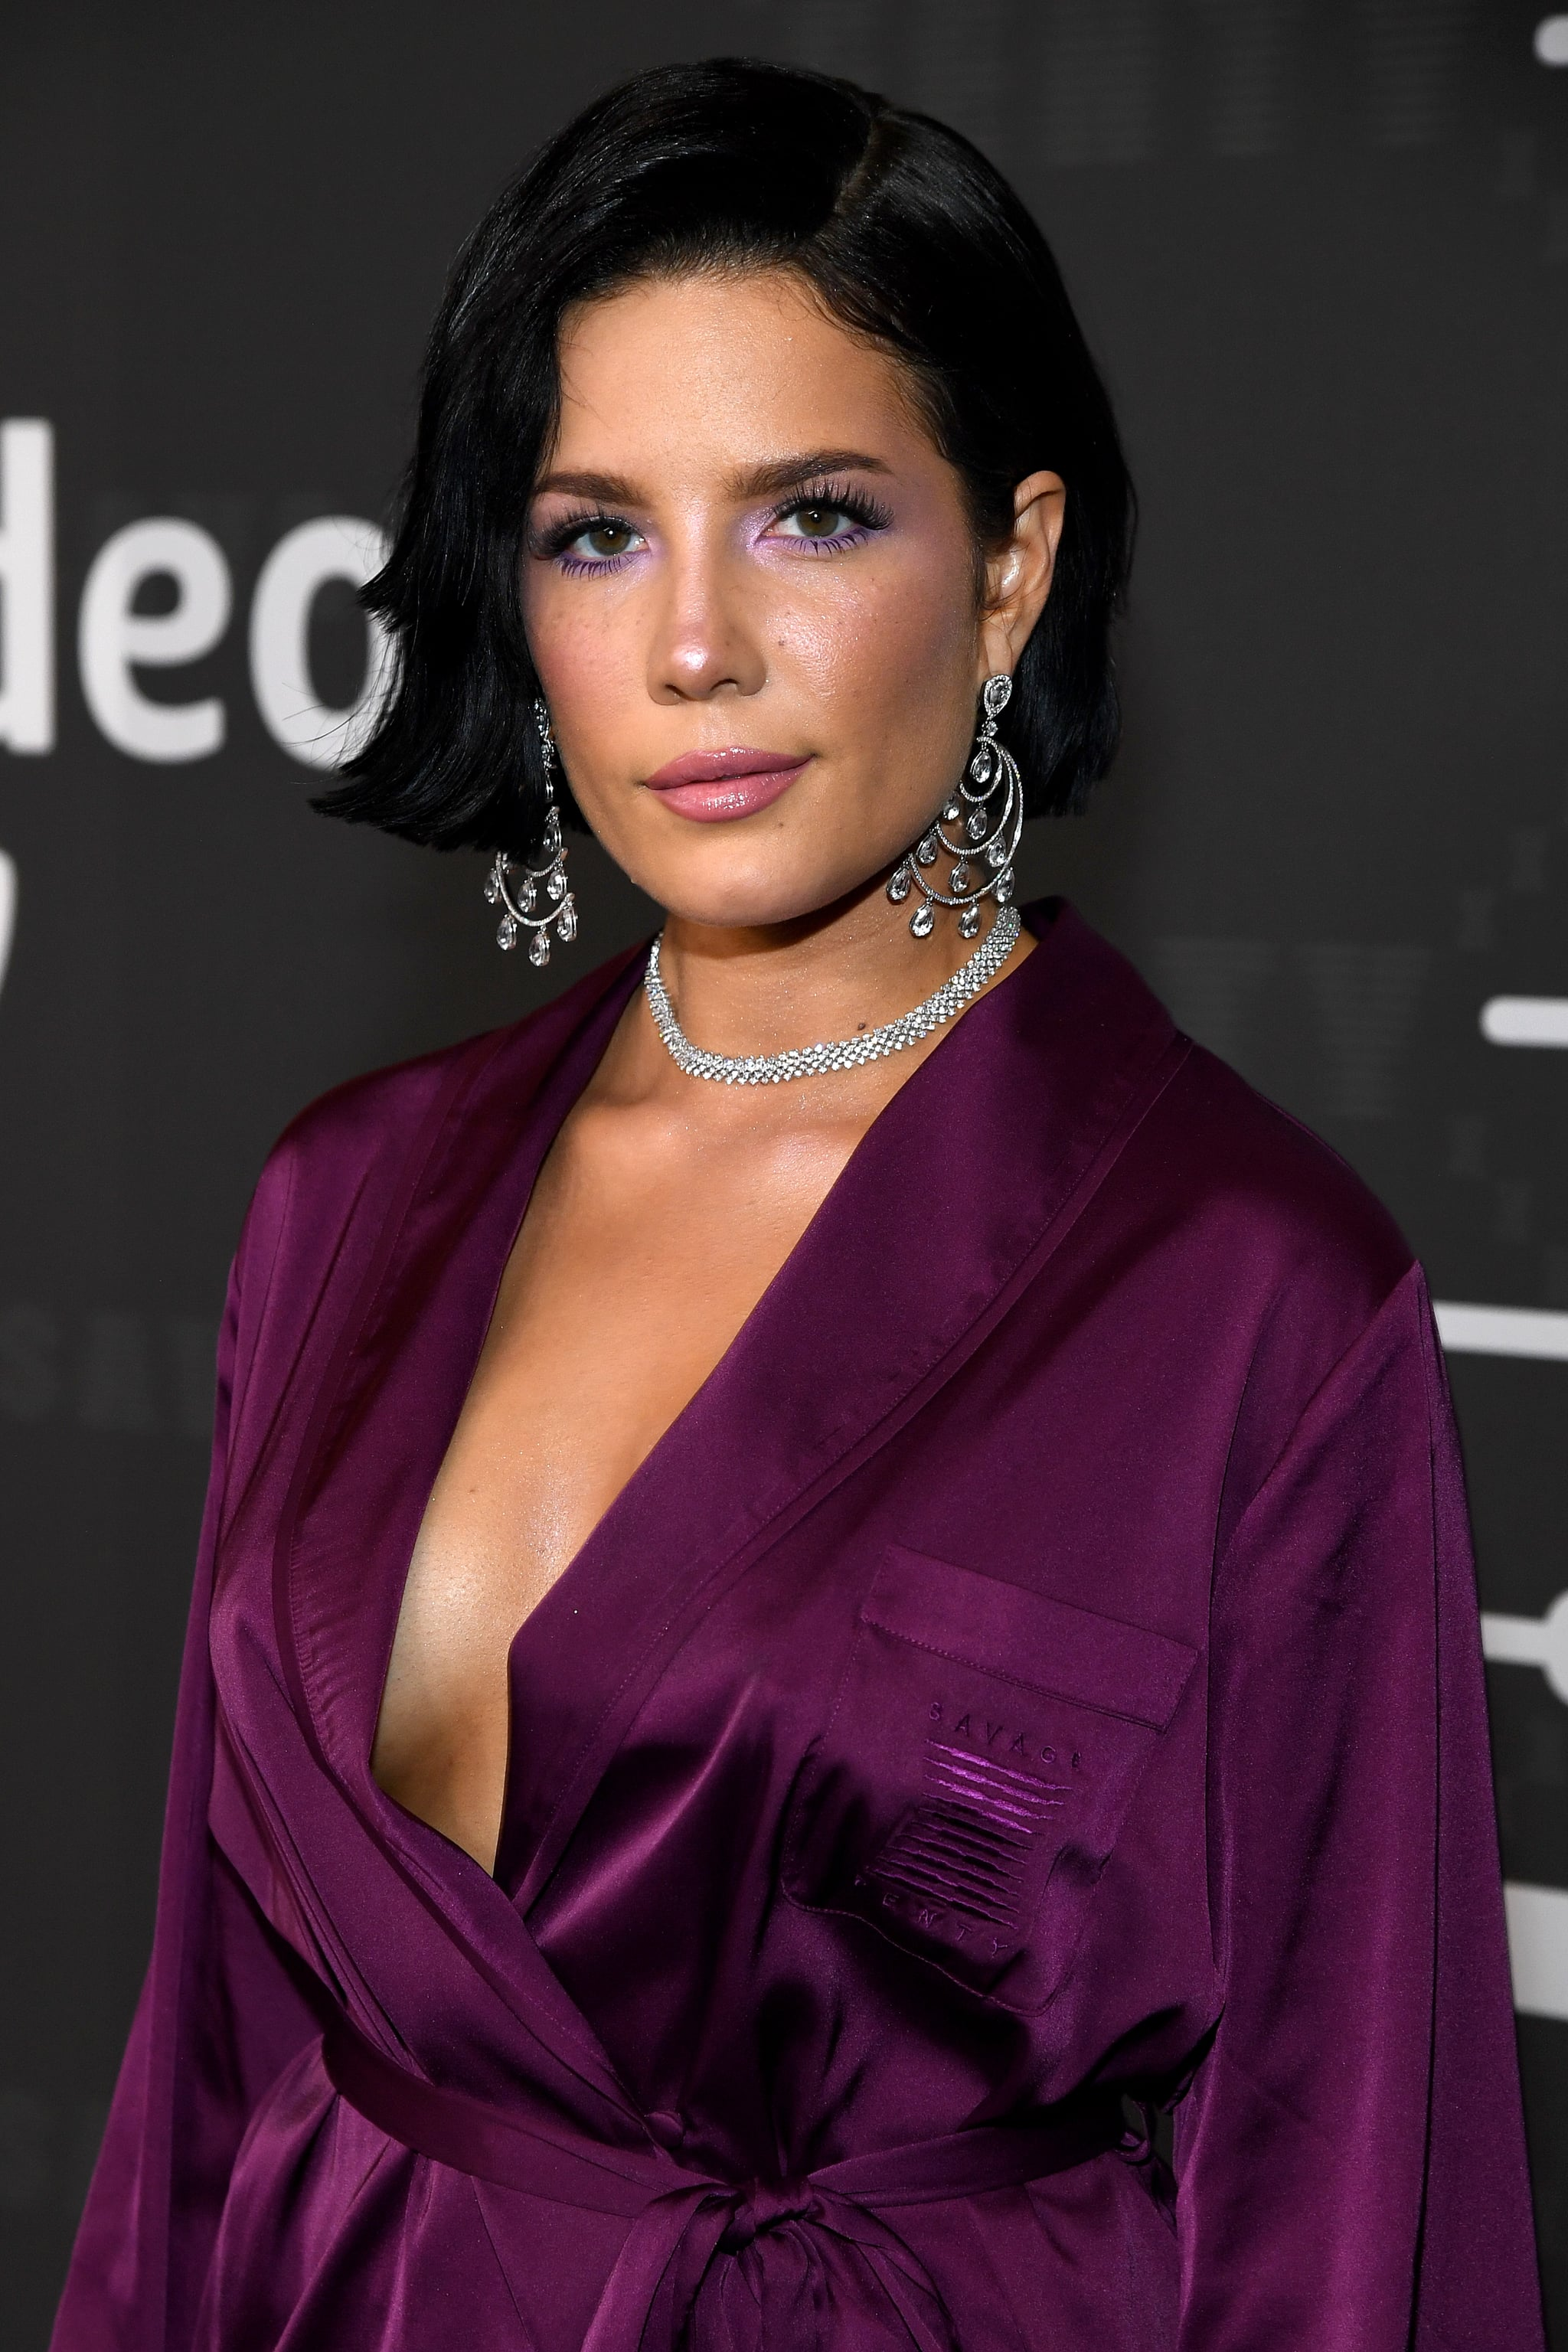 BROOKLYN, NEW YORK - SEPTEMBER 10:  Halsey attends Savage X Fenty Show Presented By Amazon Prime Video - Arrivals at Barclays Centre on September 10, 2019 in Brooklyn, New York. (Photo by Kevin Mazur/Getty Images for Savage X Fenty Show Presented by Amazon Prime Video )